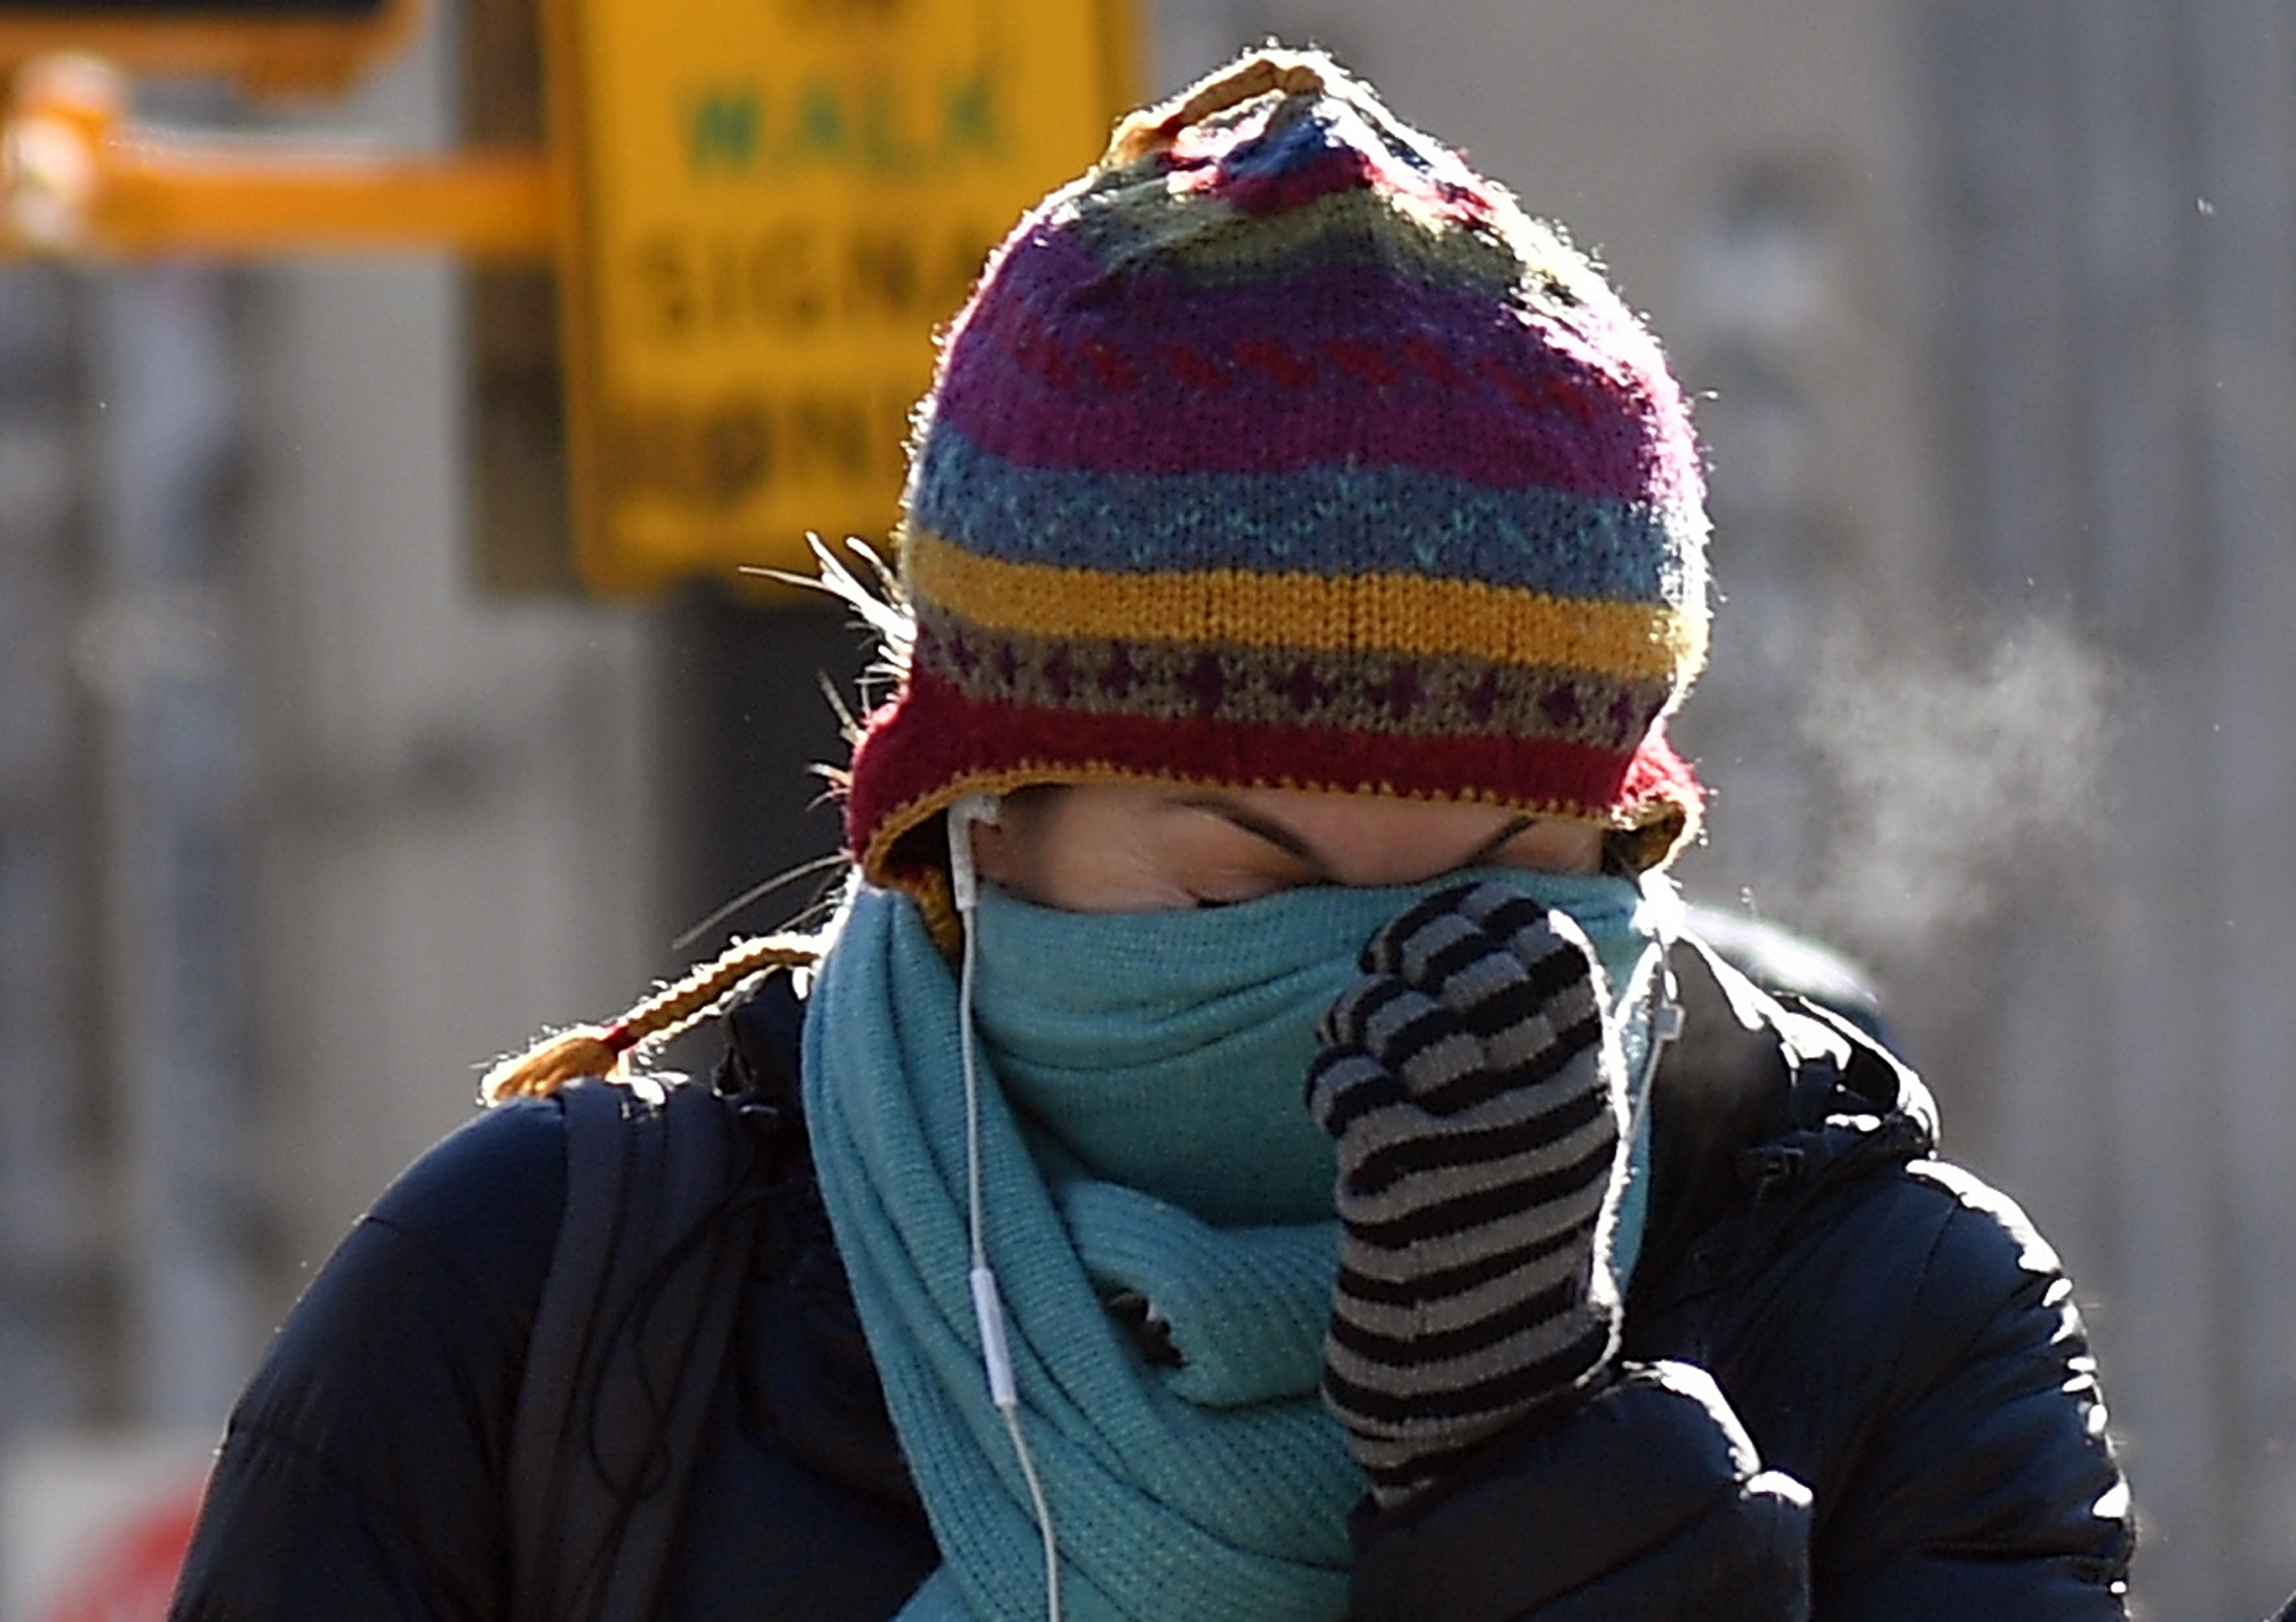 How to dress for cold weather, explained by an arctic researcher